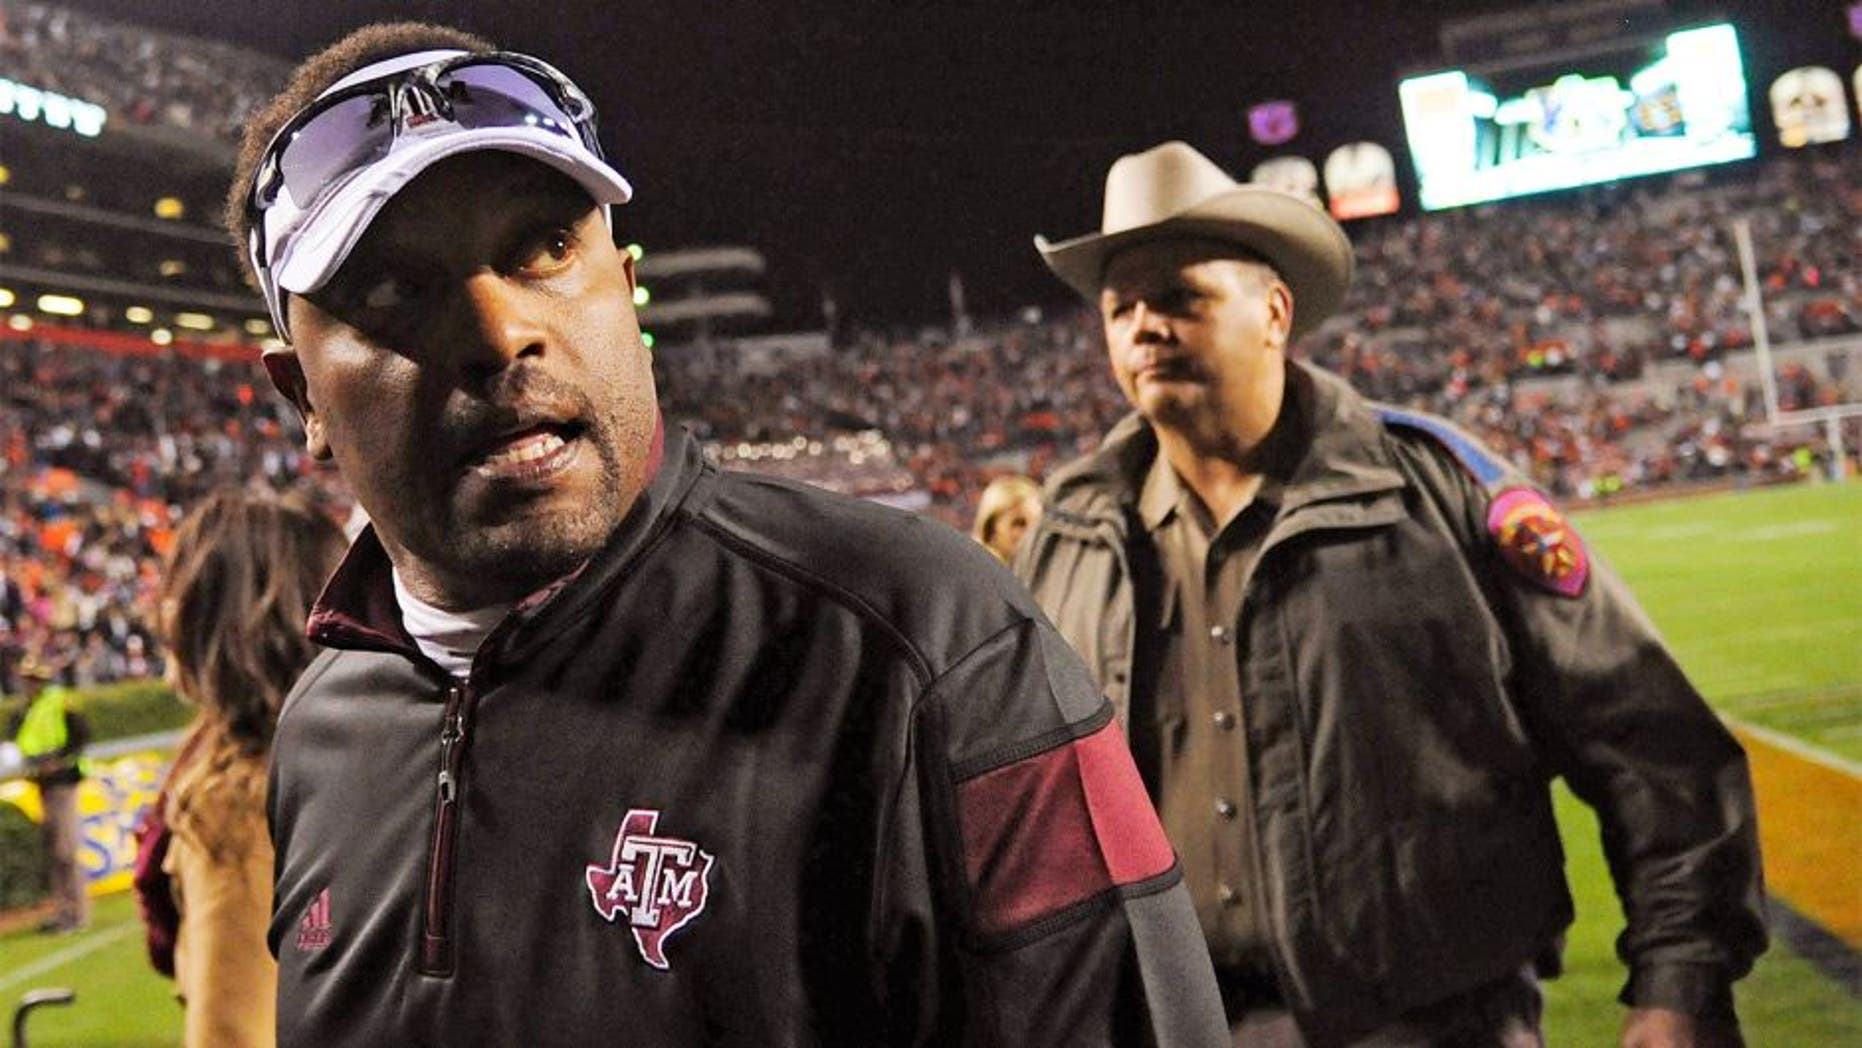 Nov 8, 2014; Auburn, AL, USA; Texas A&M Aggies head coach Kevin Sumlin leaves the field after the game against the Auburn Tigers at Jordan Hare Stadium. Texas A&M won 41-38. Mandatory Credit: Shanna Lockwood-USA TODAY Sports